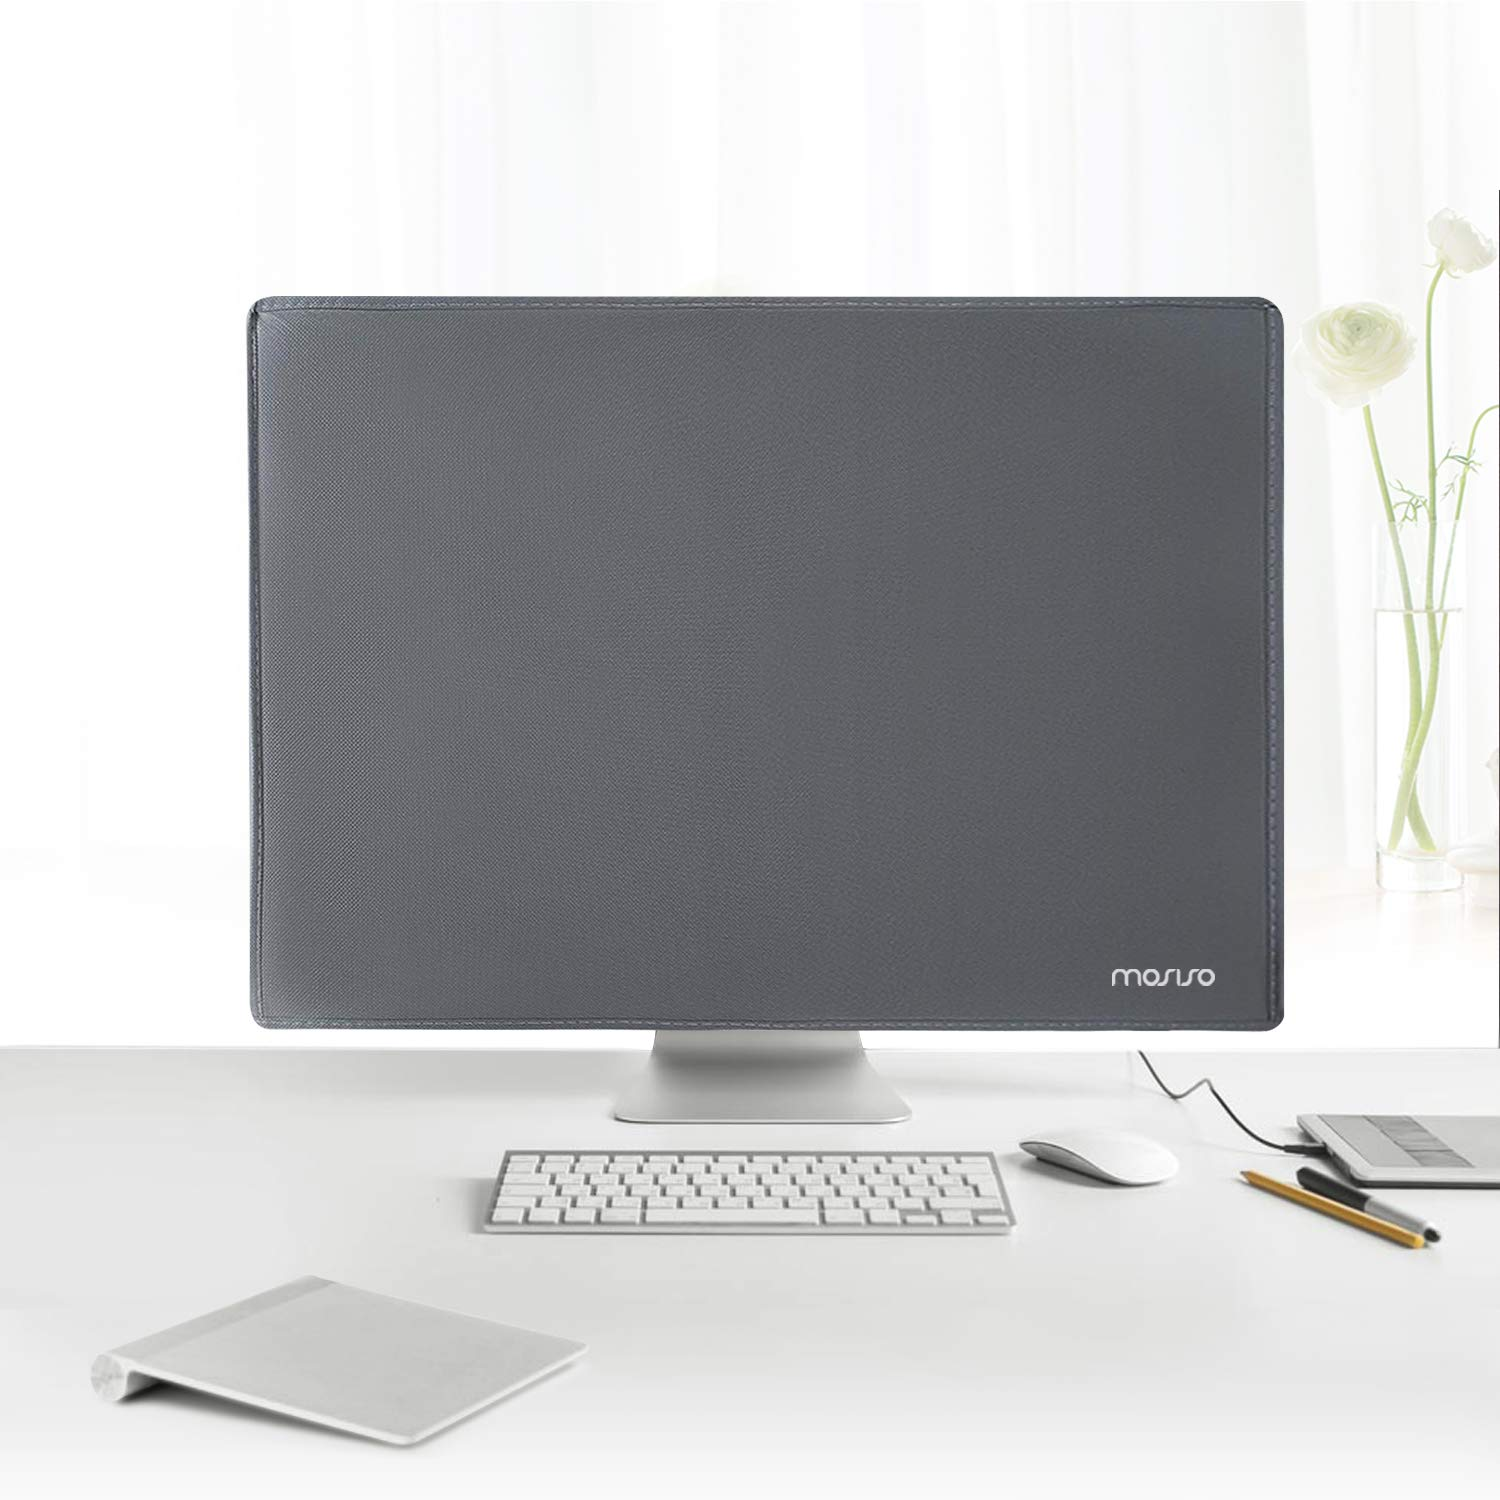 free shipping ab5f0 f76cb Mosiso Protective Dust Cover for LCD Flat Screen Computer Monitors fits  22-25 Inch Computer,Space Gray